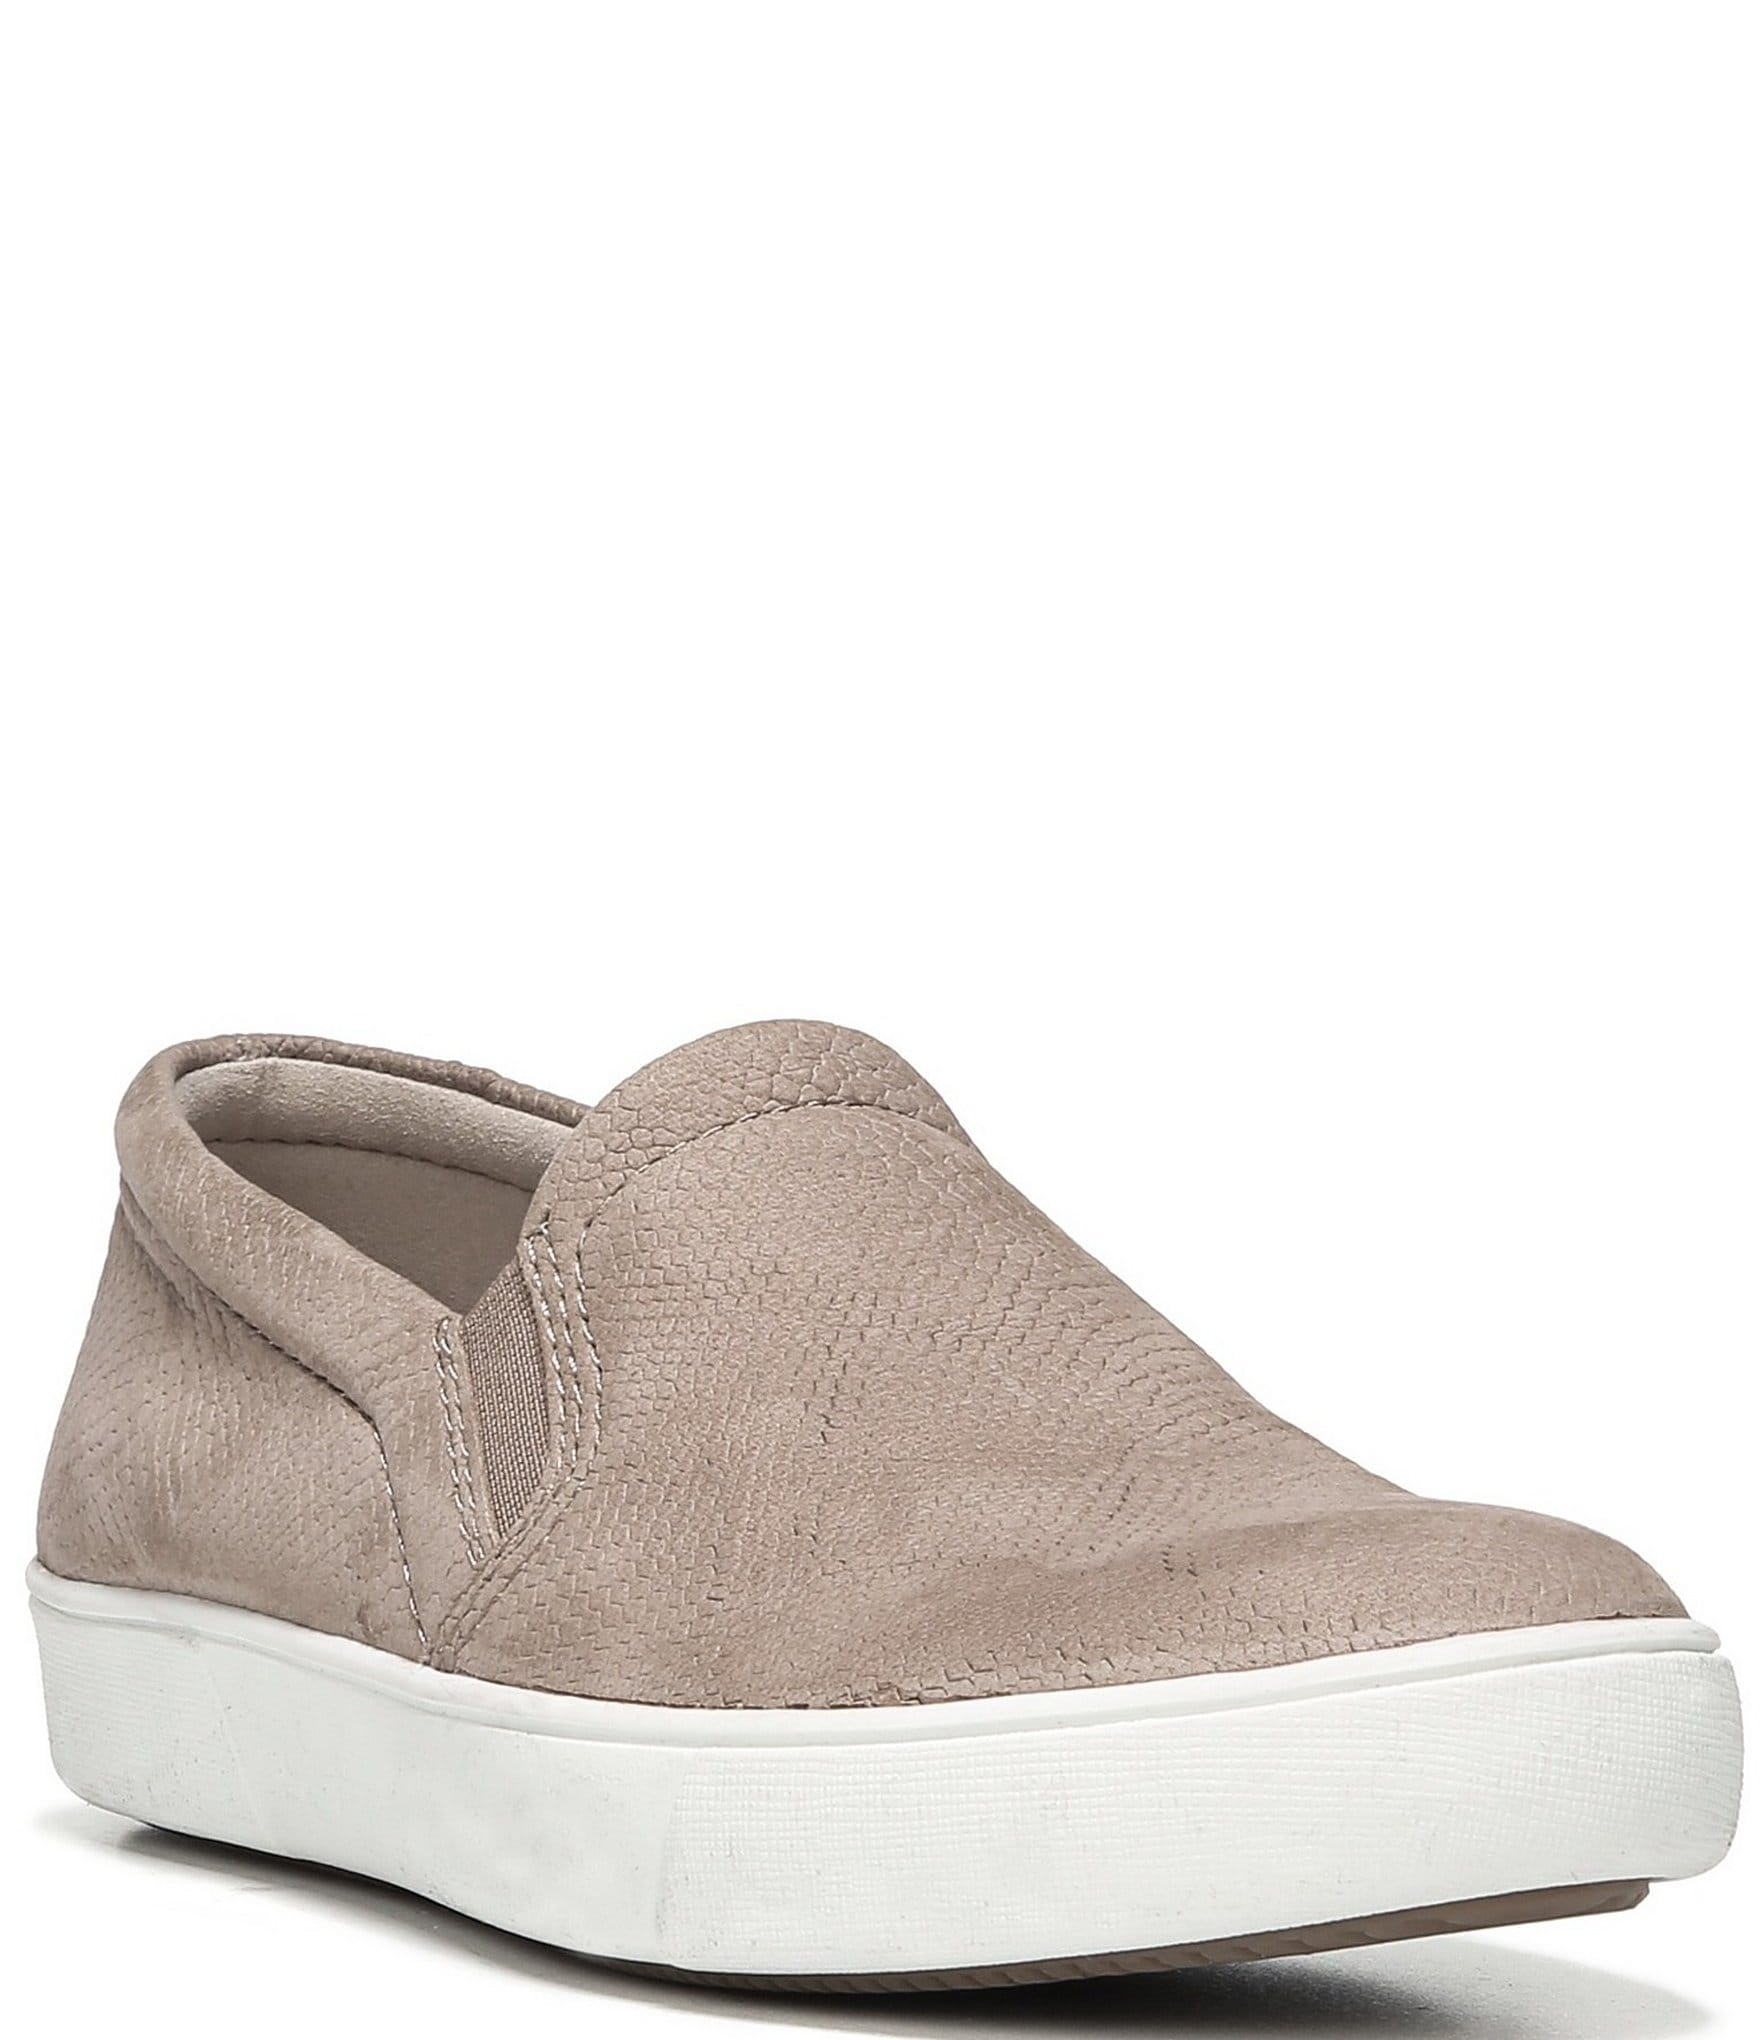 Alskara Banded Slip On Sneakers AygneHwu